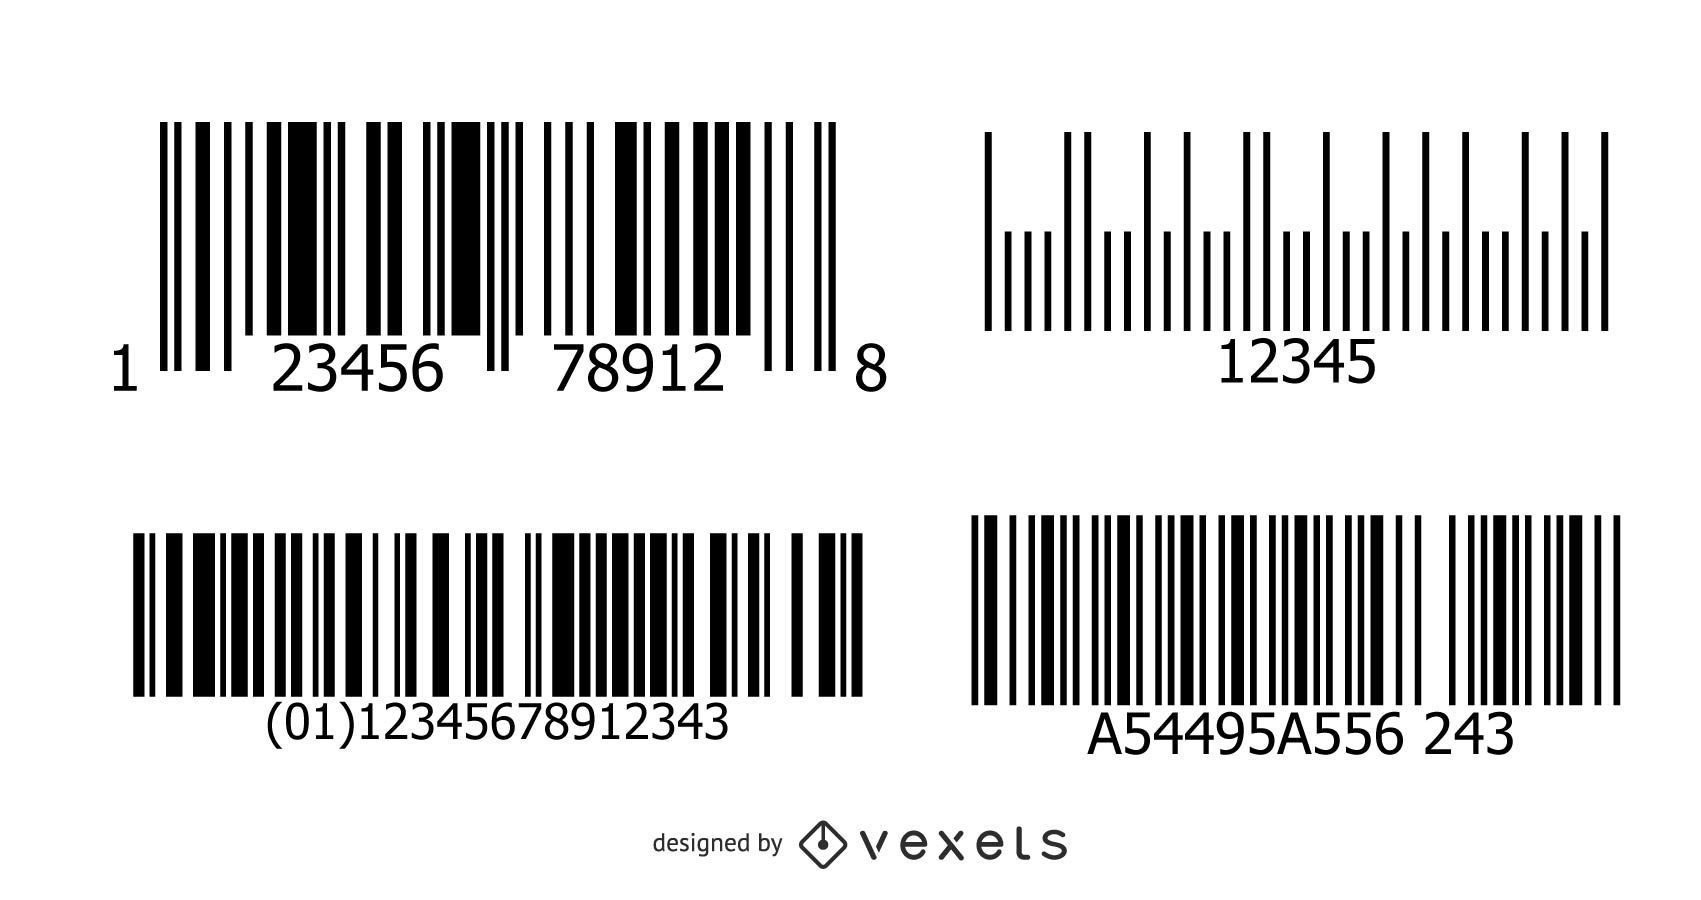 Editable Text Barcode Design Pack